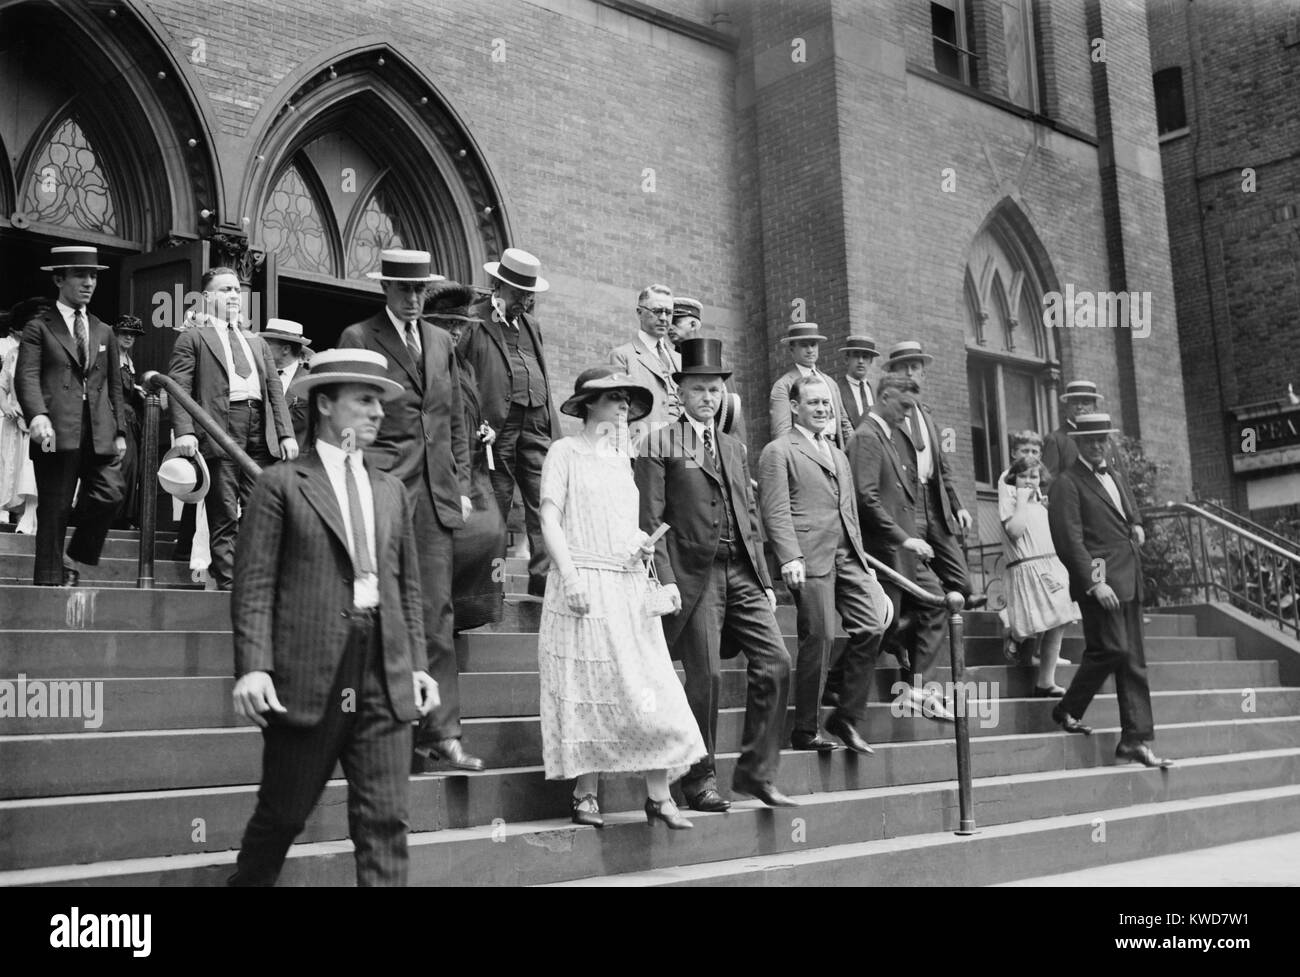 President Calvin Coolidge and First Lady Grace Coolidge leaving church on Aug. 5, 1923. It was the first Sunday - Stock Image